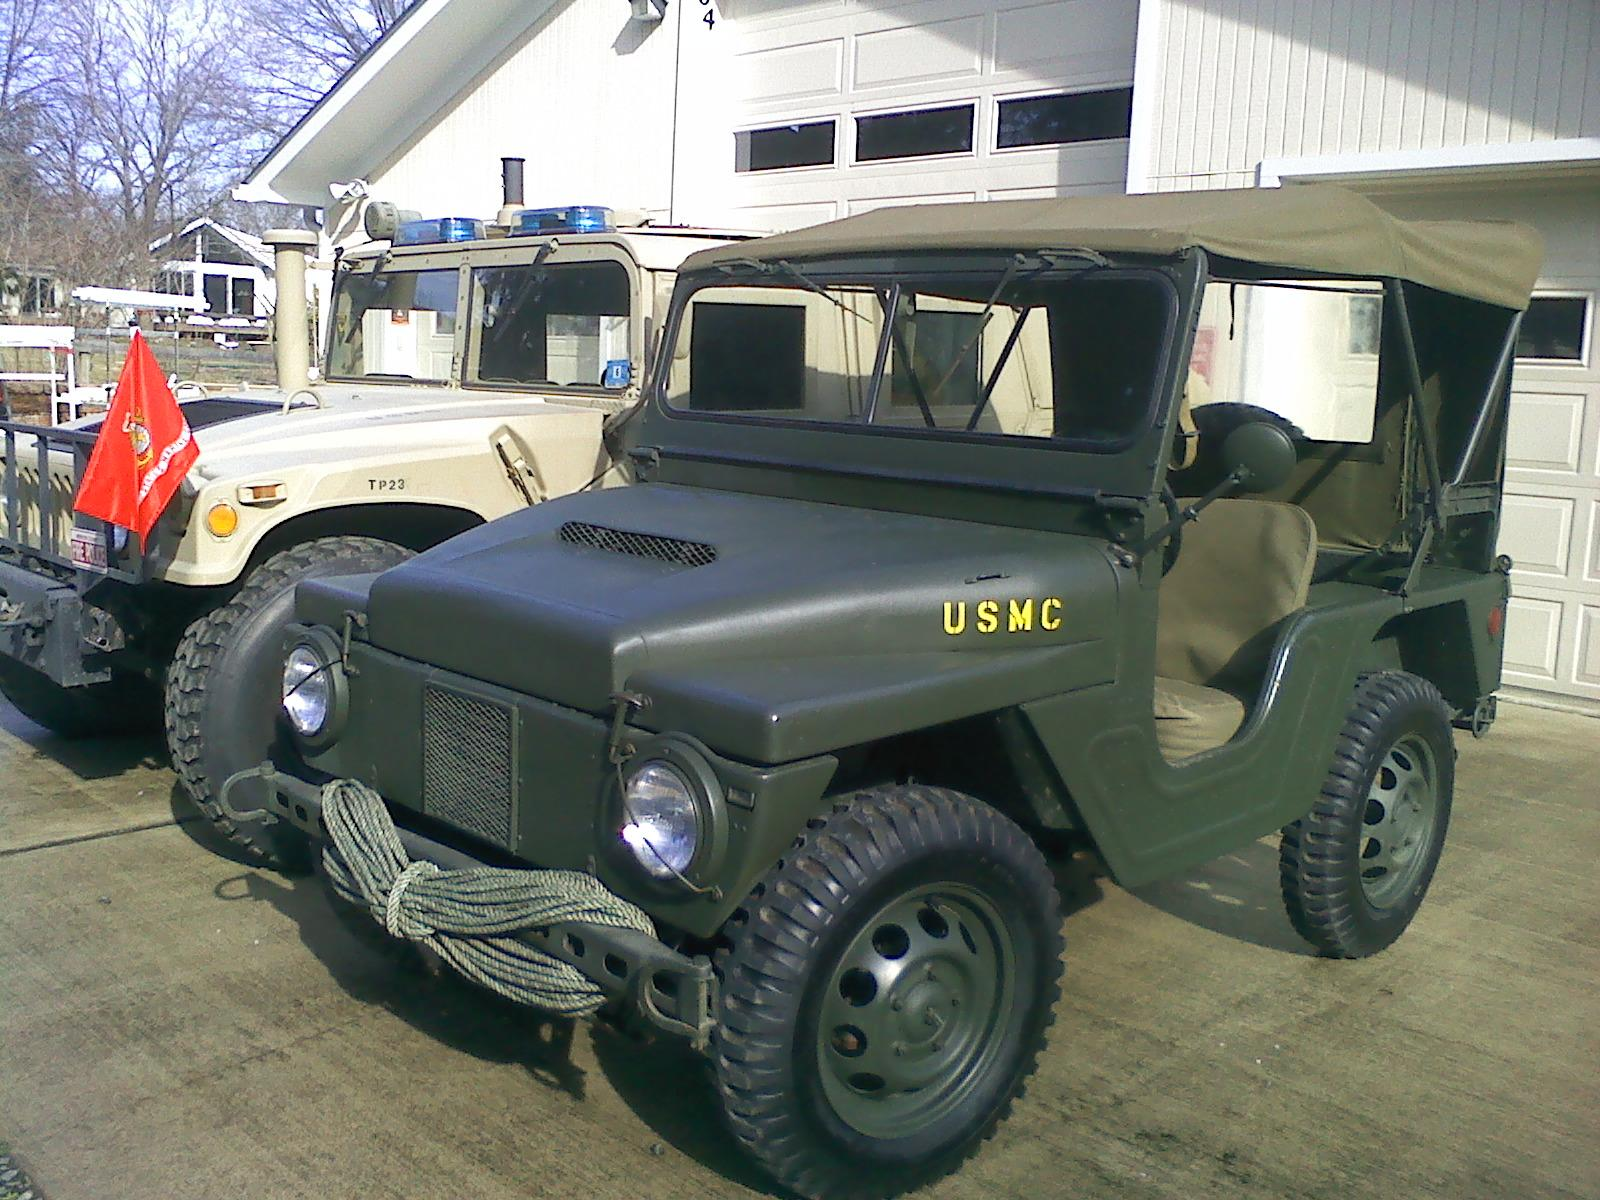 M422/M422A1 Mighty Mites